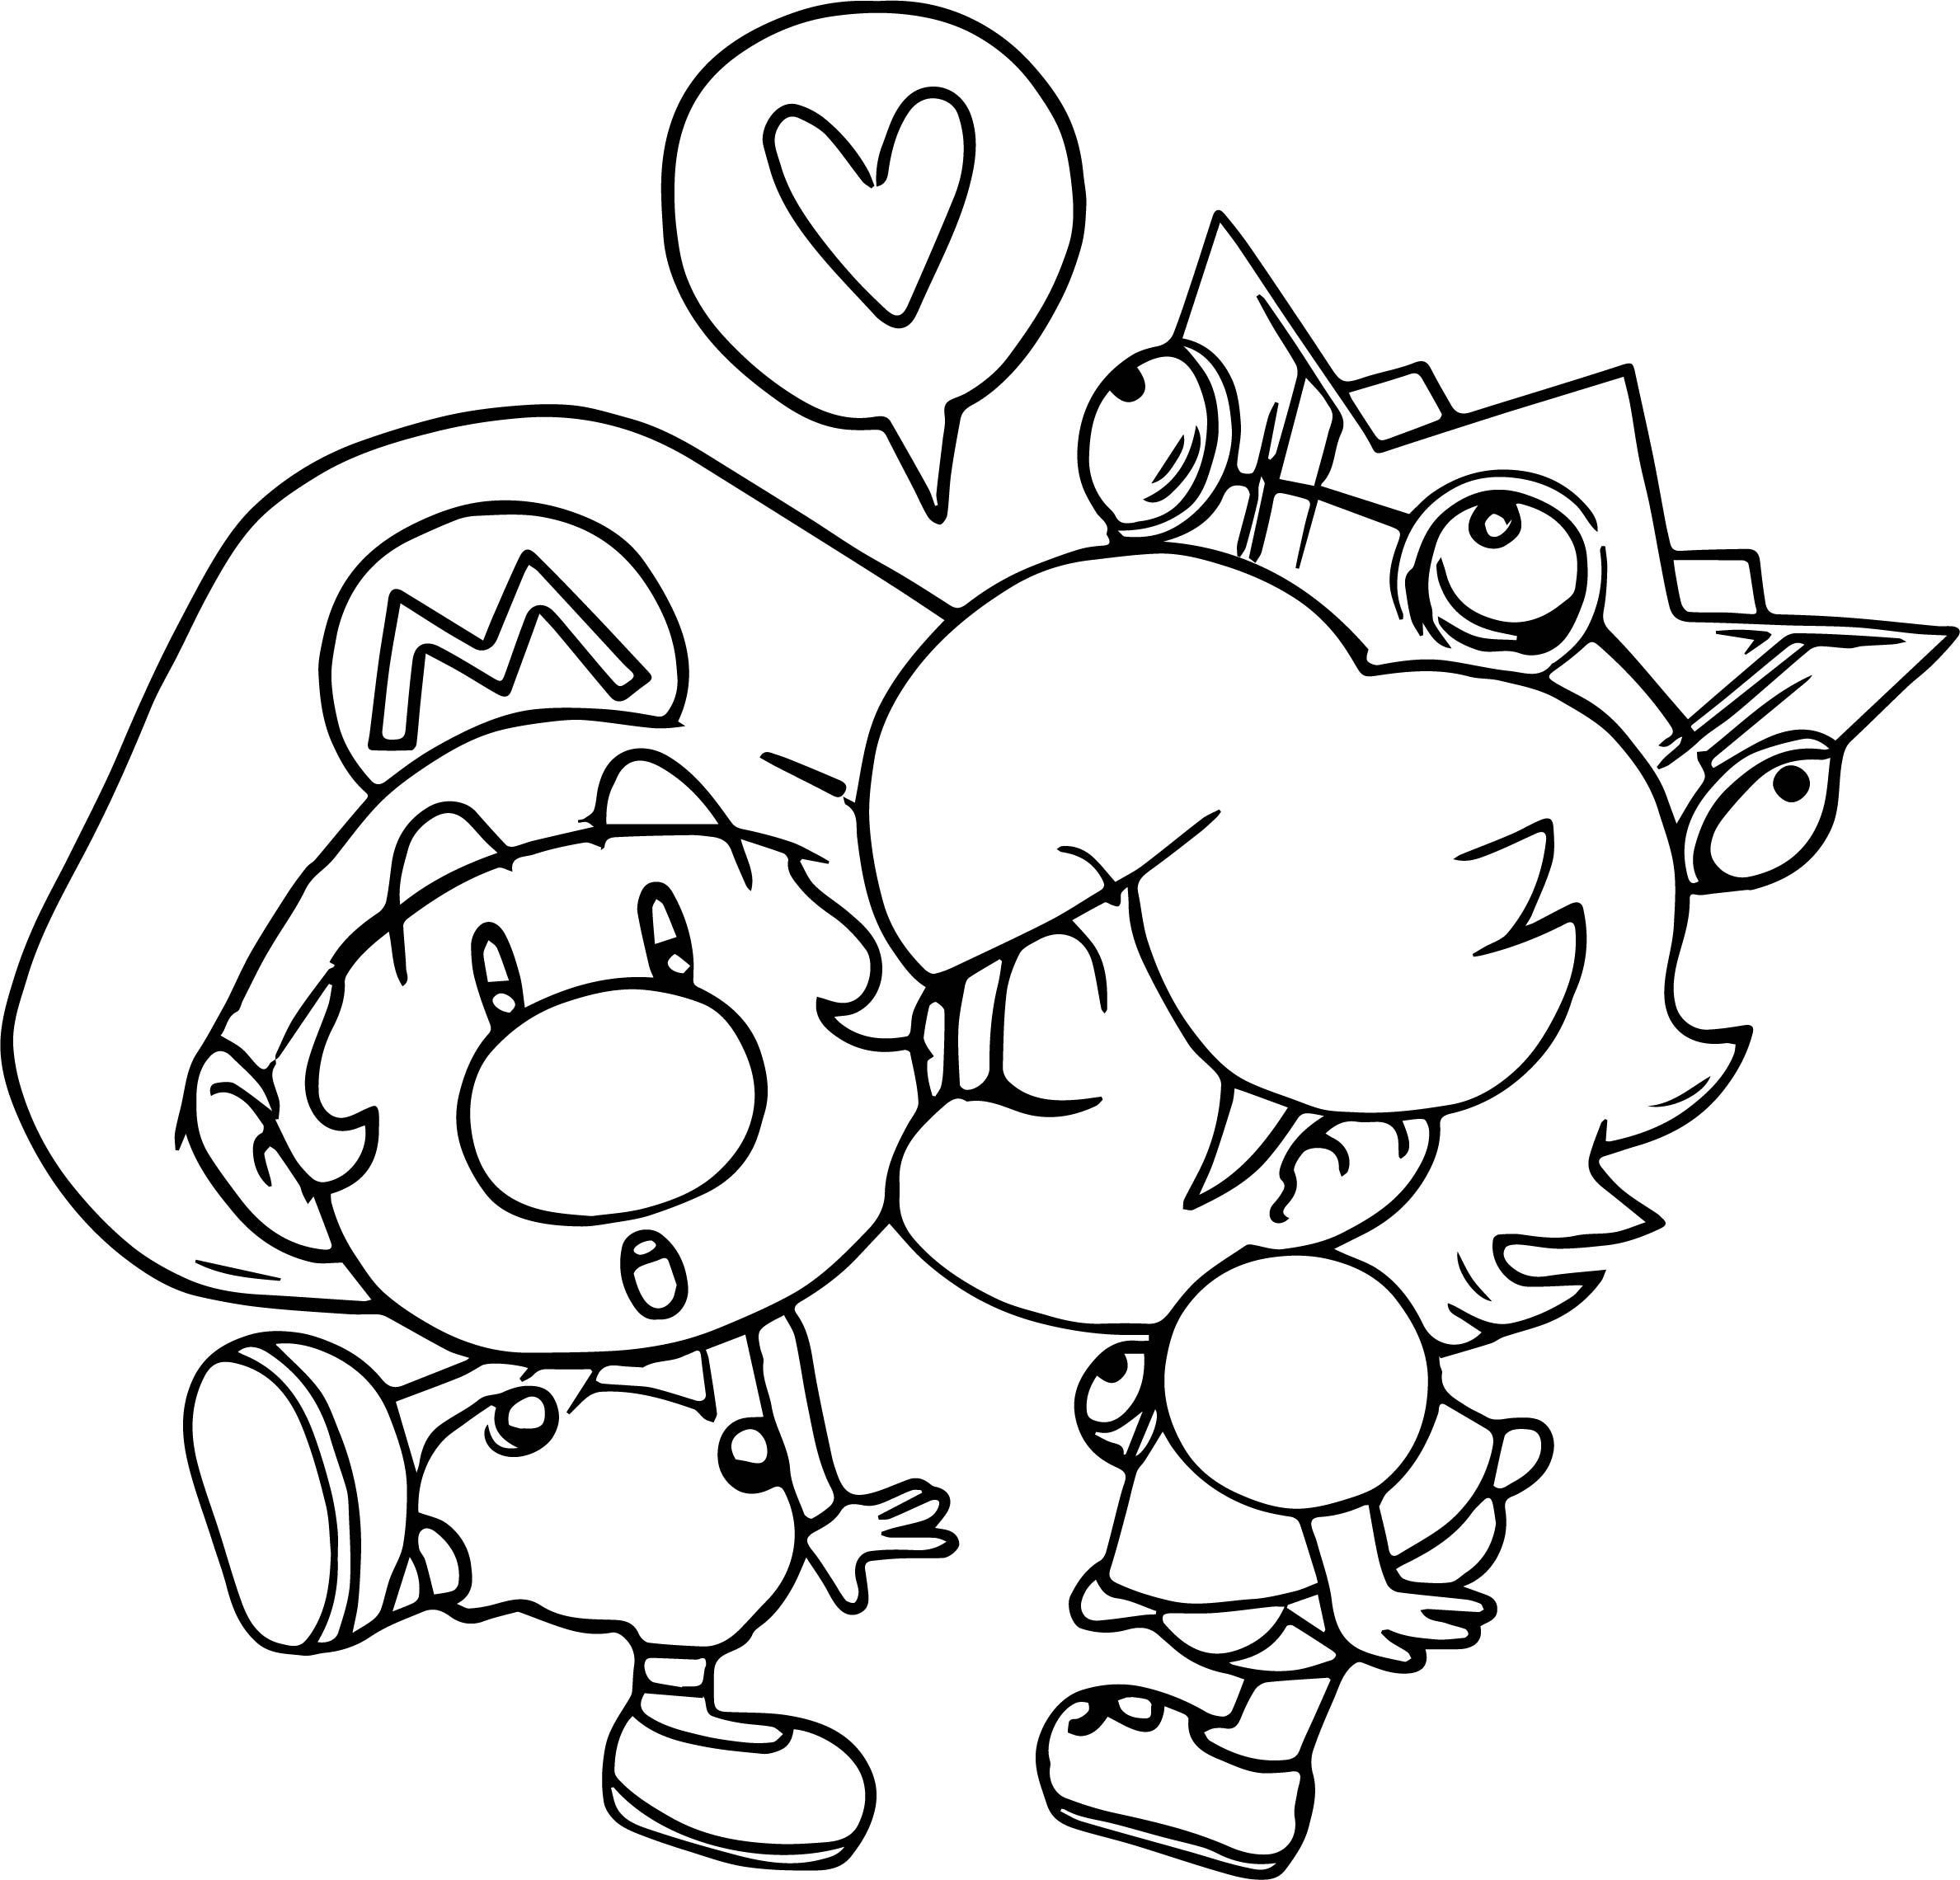 Awesome Mario And Daisy Coloring Page Mario Coloring Pages Super Mario Coloring Pages A In 2021 Mario Coloring Pages Super Mario Coloring Pages Avengers Coloring Pages